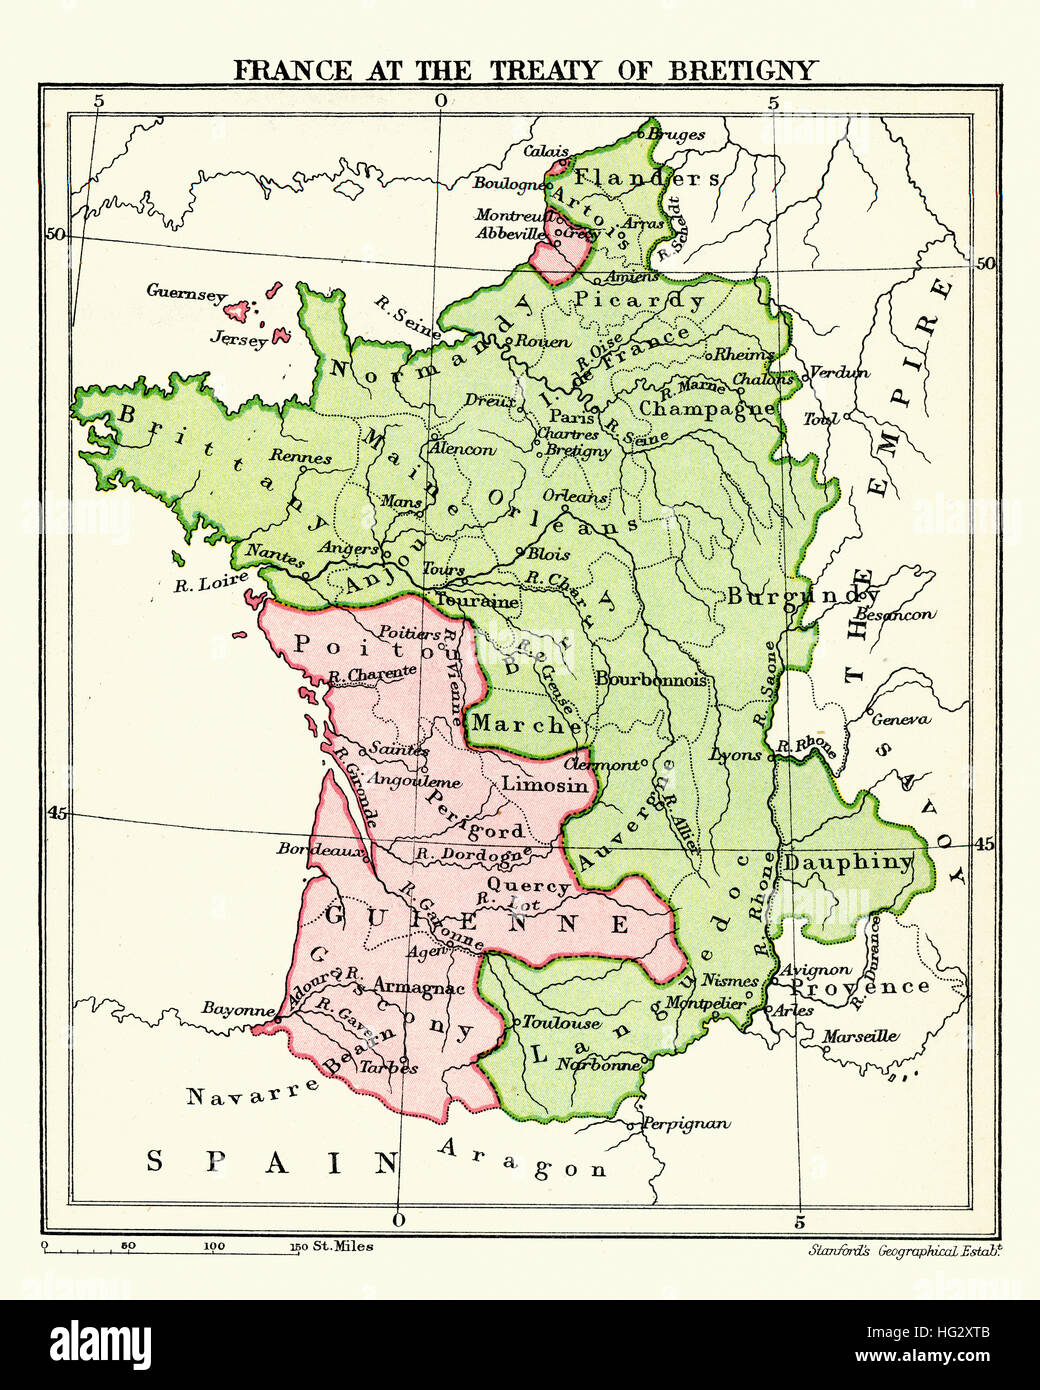 Map of France at the Treaty of Bretigny. Ratified on 24 October 1360, between King Edward III of England and King Stock Photo